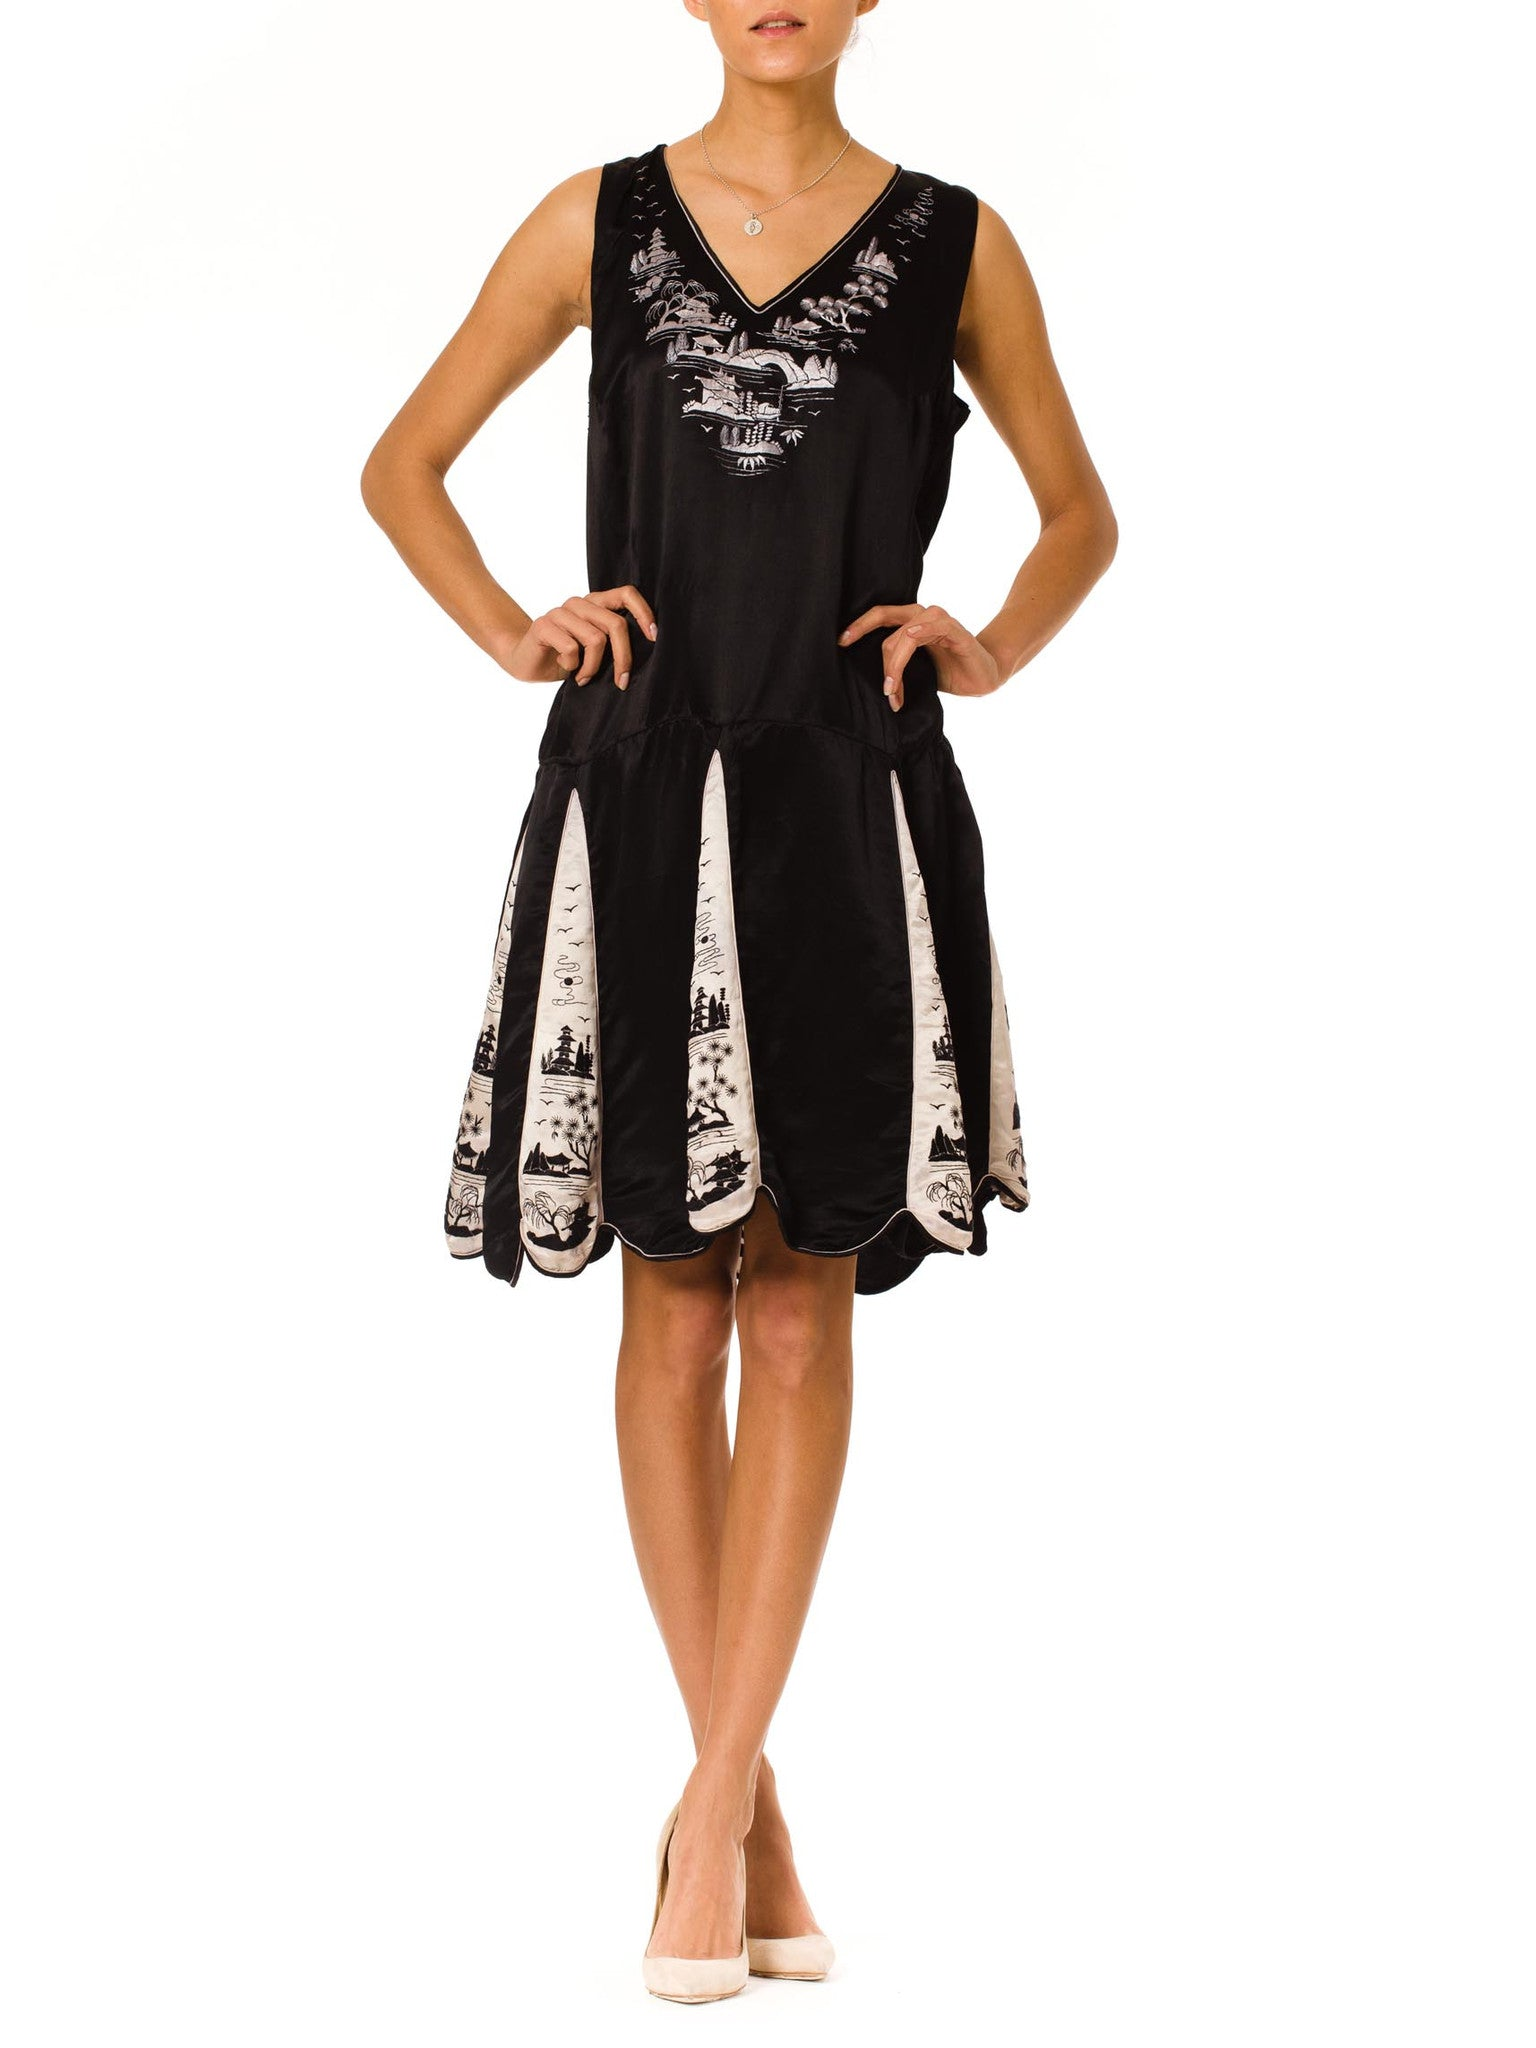 Exciting Vintage 1920s Black and White Asian Embroidered Silk Dress